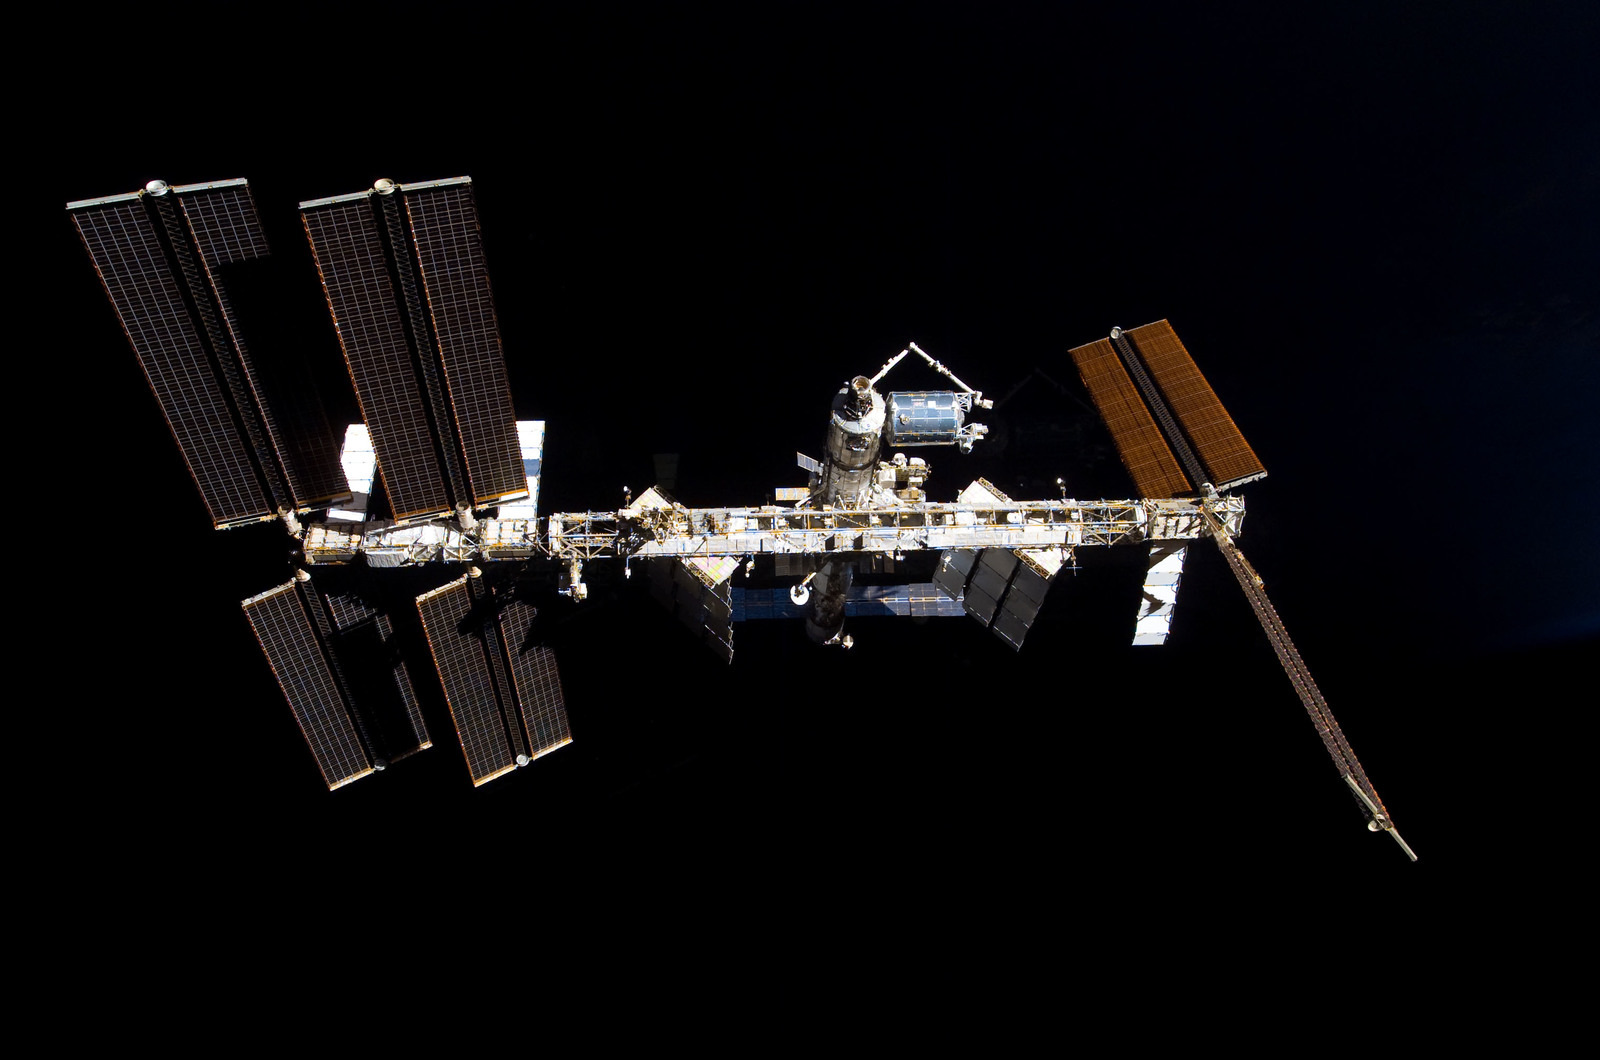 S122E009856 - STS-122 - View of ISS after STS-122 Undocking